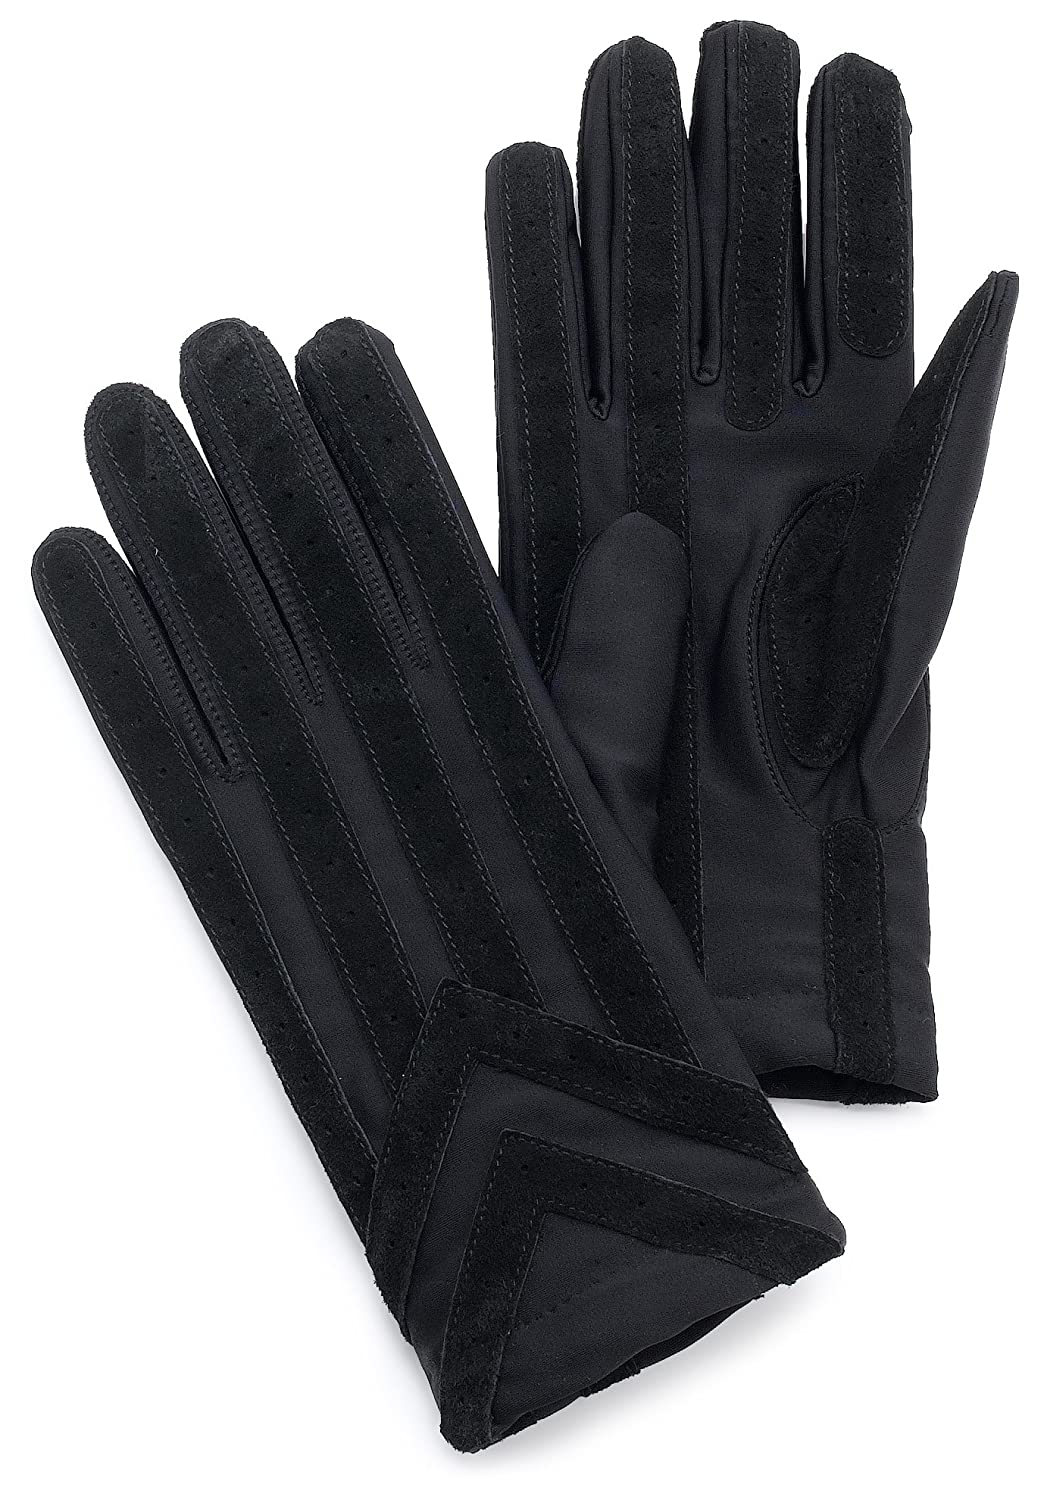 Black gardening gloves - Isotoner Men S Spandex Glove With Suede Palm Strips Brown Medium Large At Amazon Men S Clothing Store Cold Weather Gloves